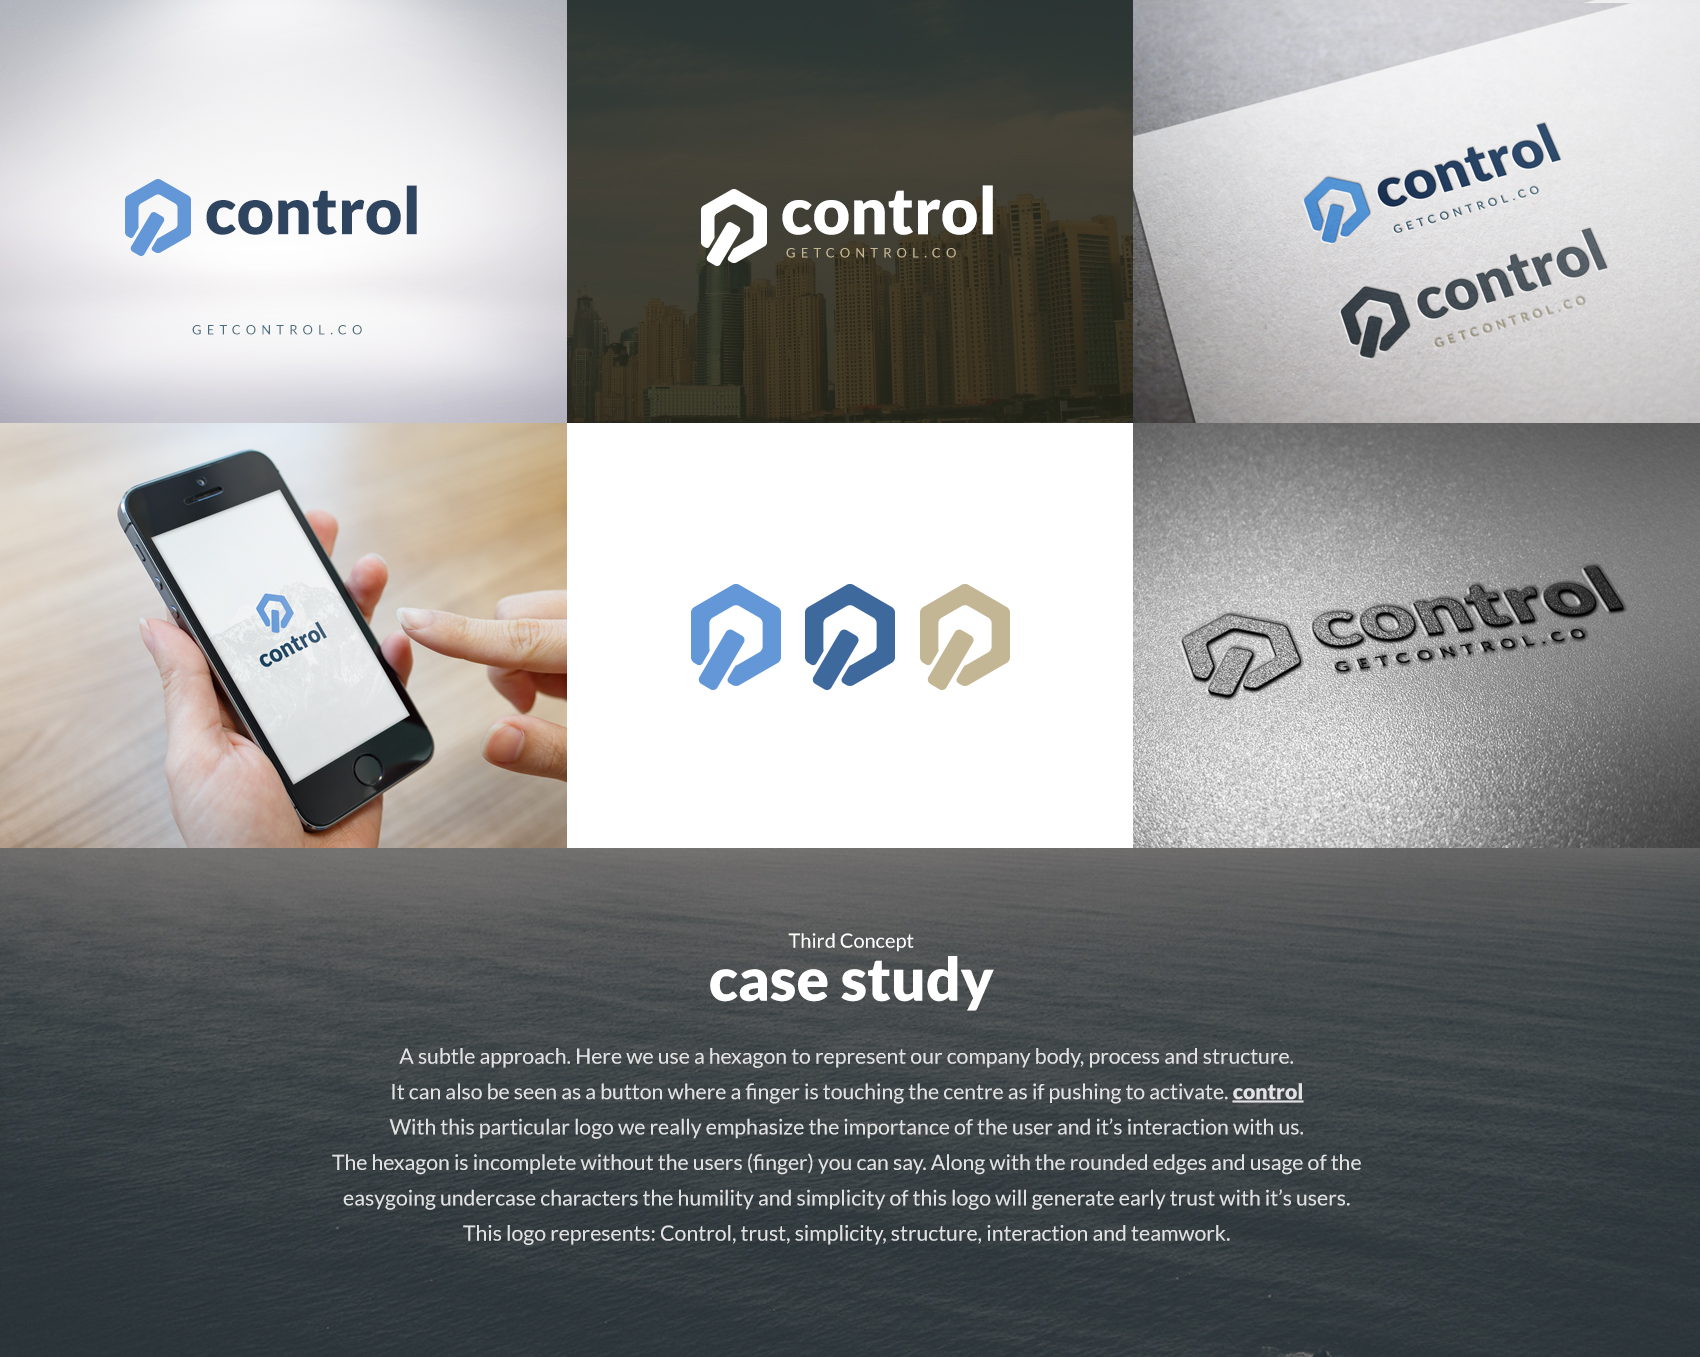 Branding provided by client